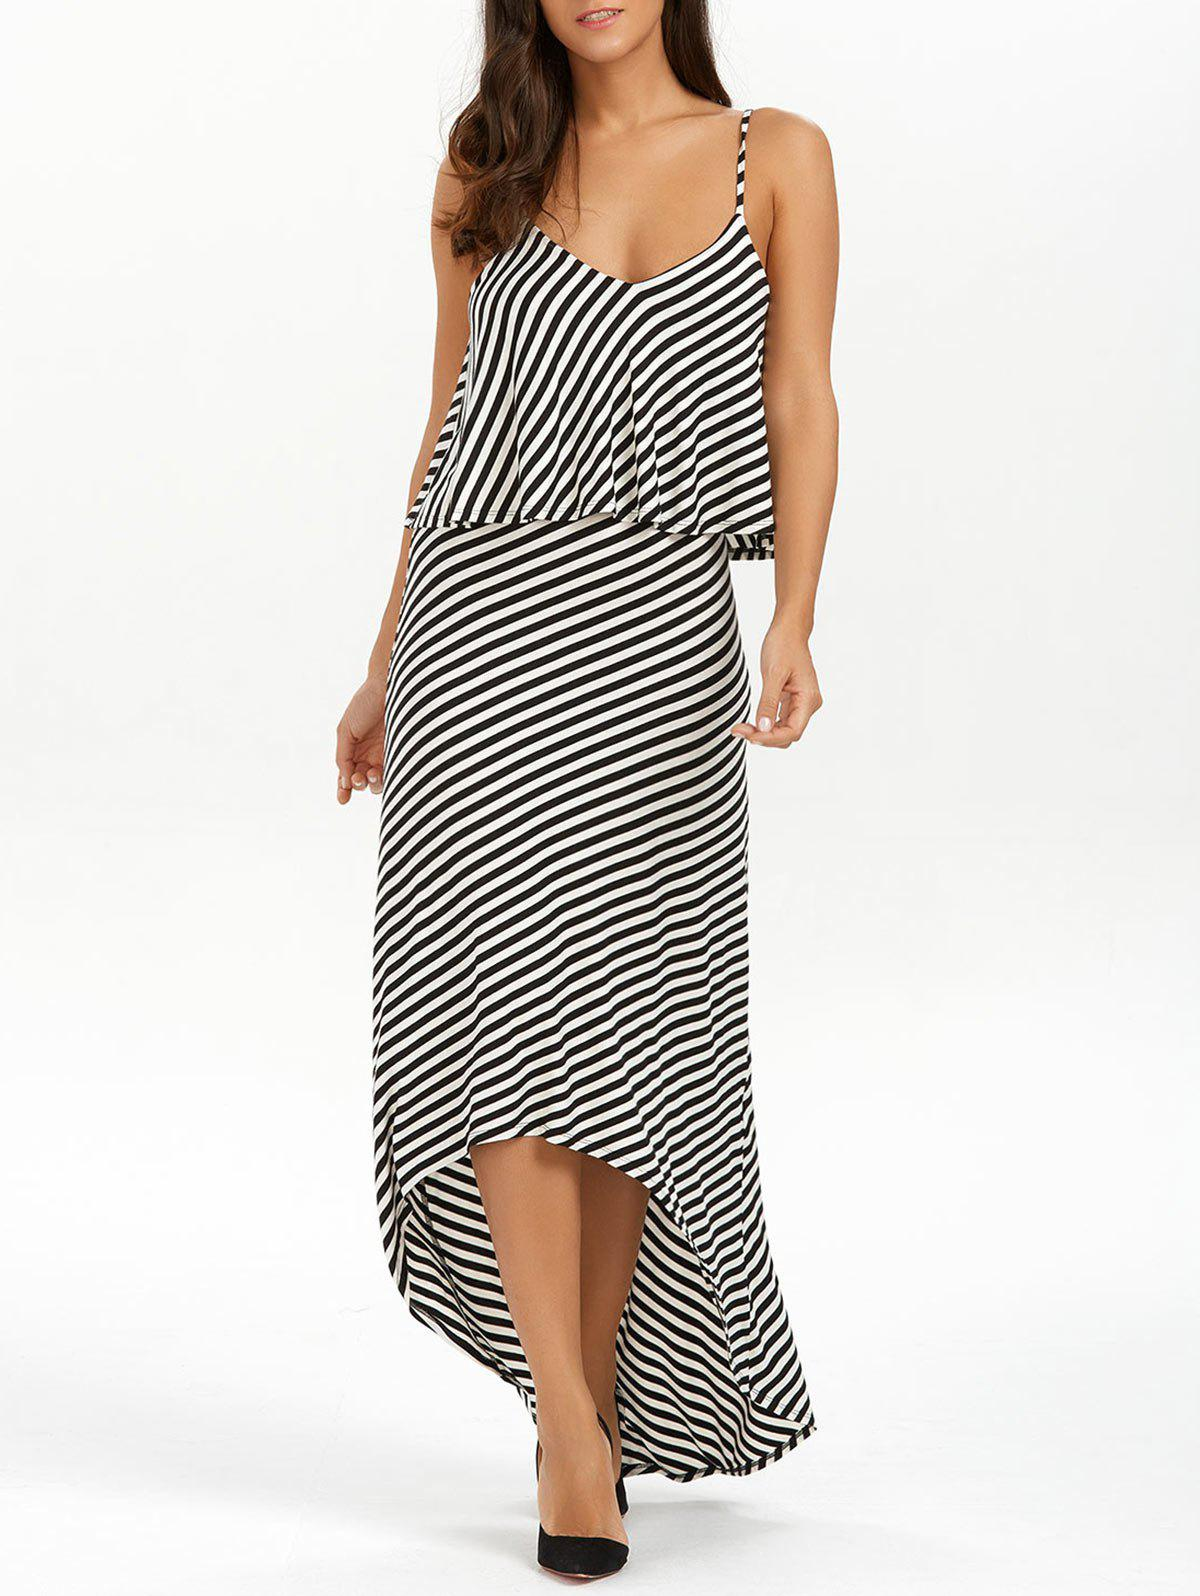 New Striped High Low Slip Summer Casual Maxi Dress